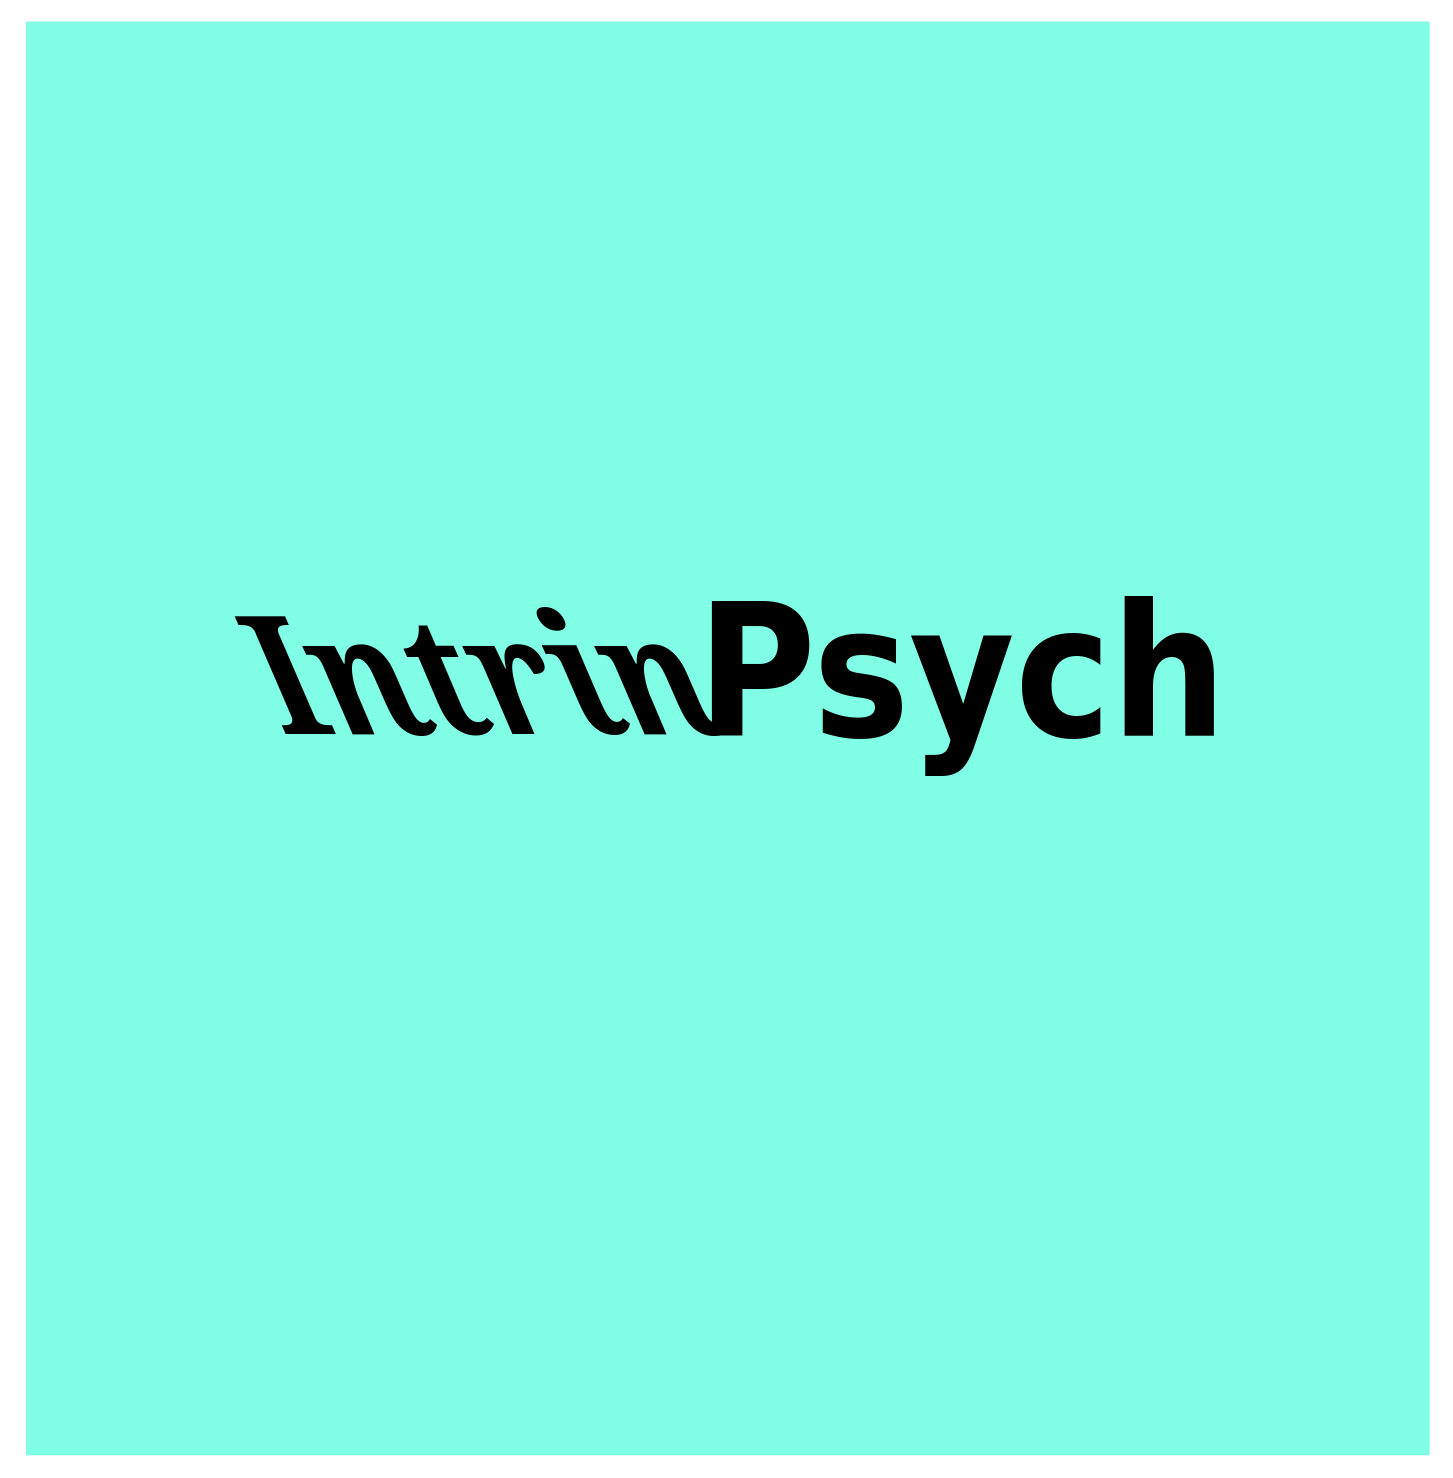 Logo Design by JaroslavProcka - Entry No. 216 in the Logo Design Contest New Logo Design for IntrinPsych.